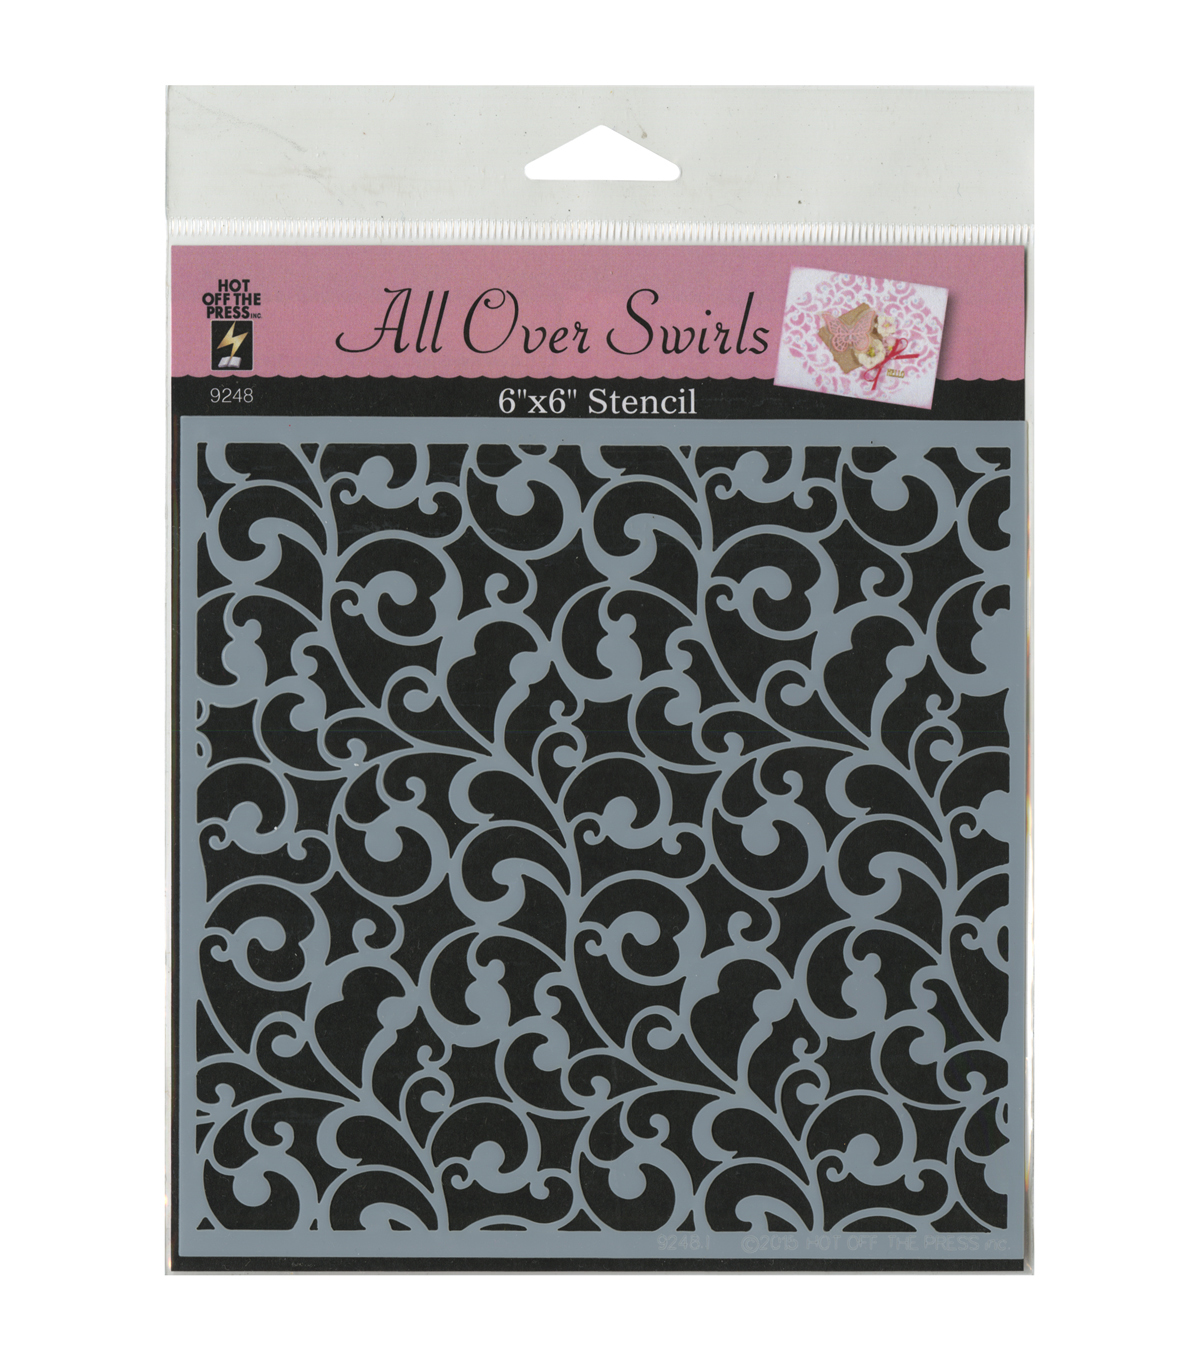 Hot Off The Press 6\u0027\u0027x6\u0027\u0027 Stencil-All Over Swirls